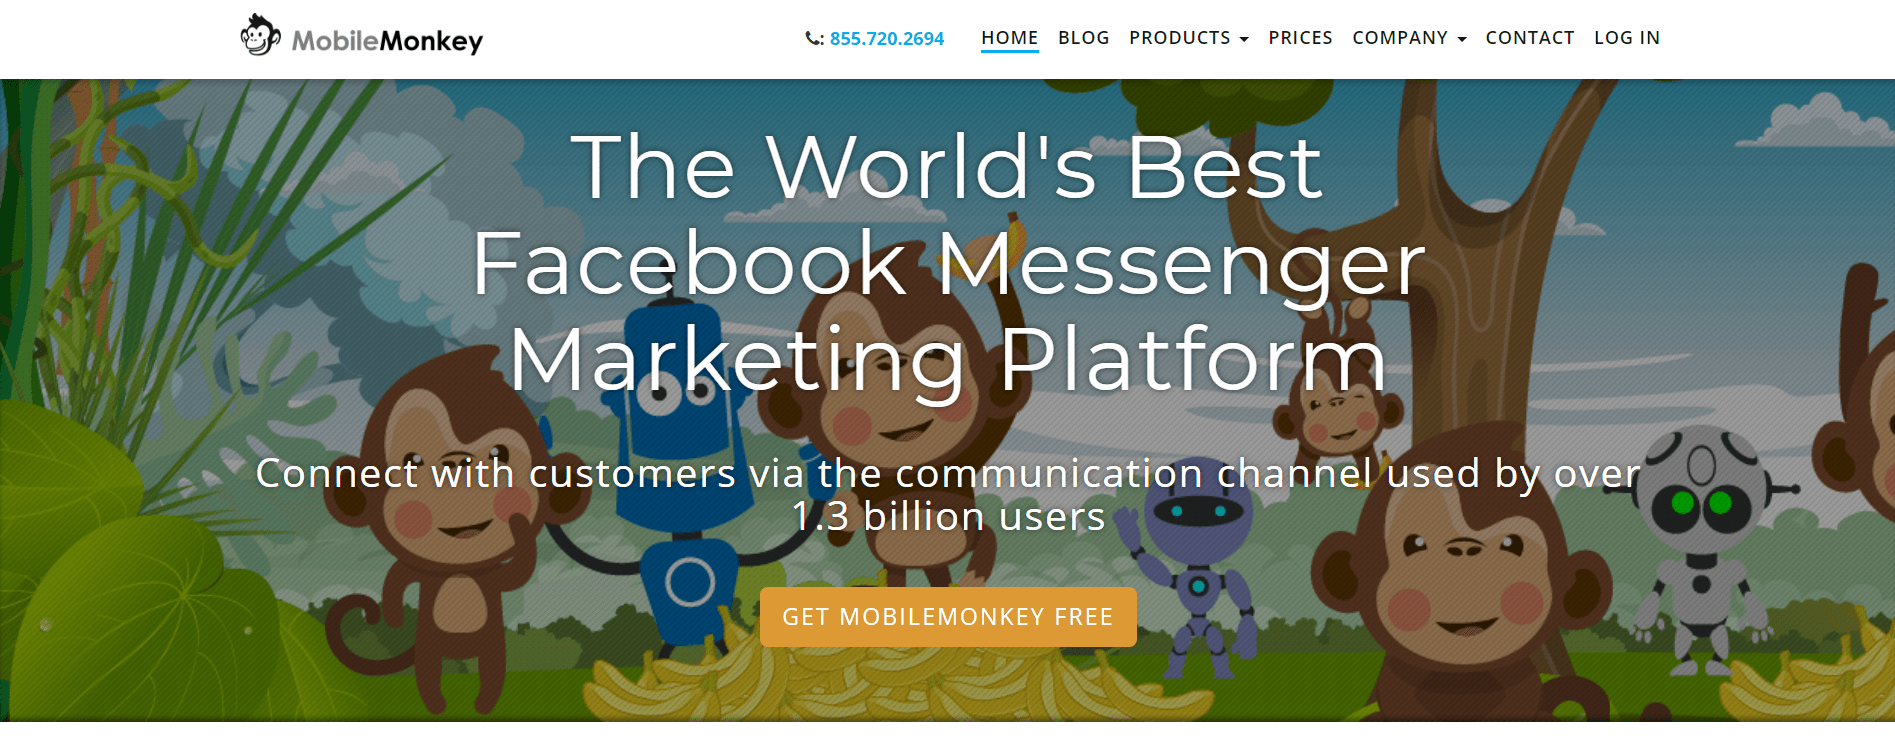 facebook messenger marketing - mobilemonkey chatbot